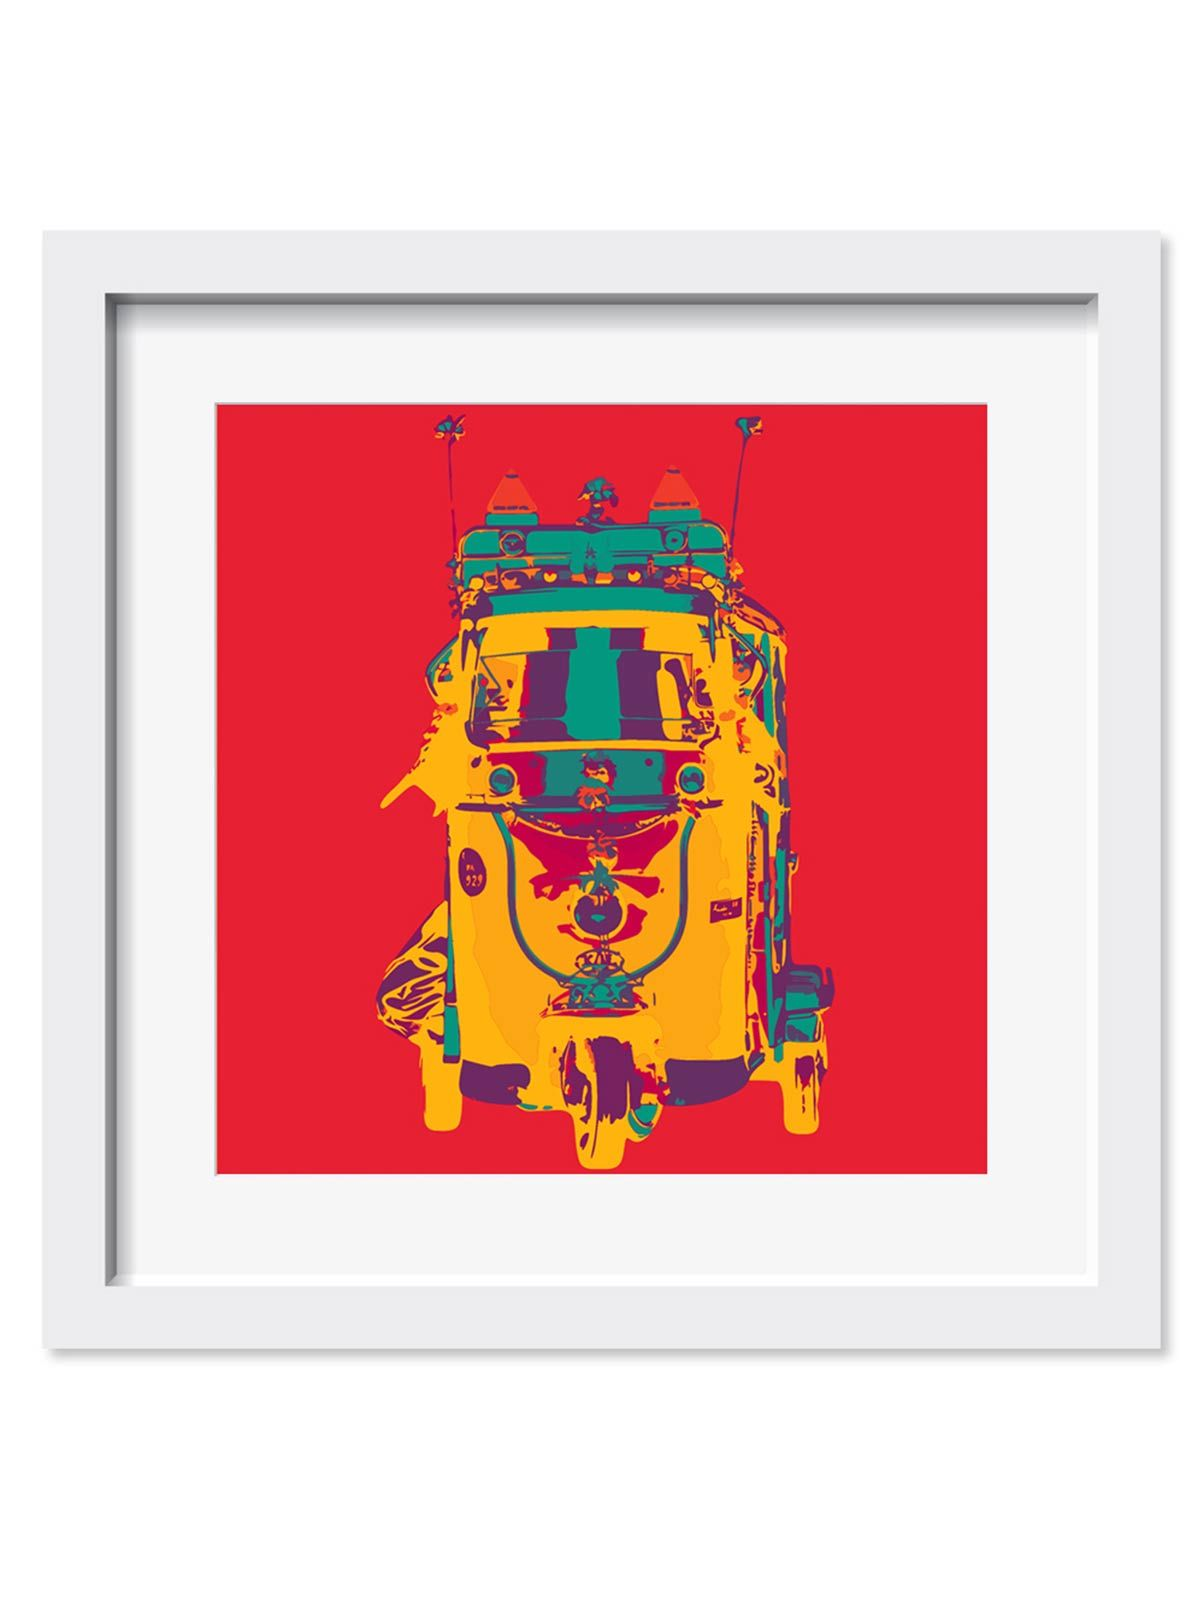 Funky Taxi Art Print - 9X9 Inches